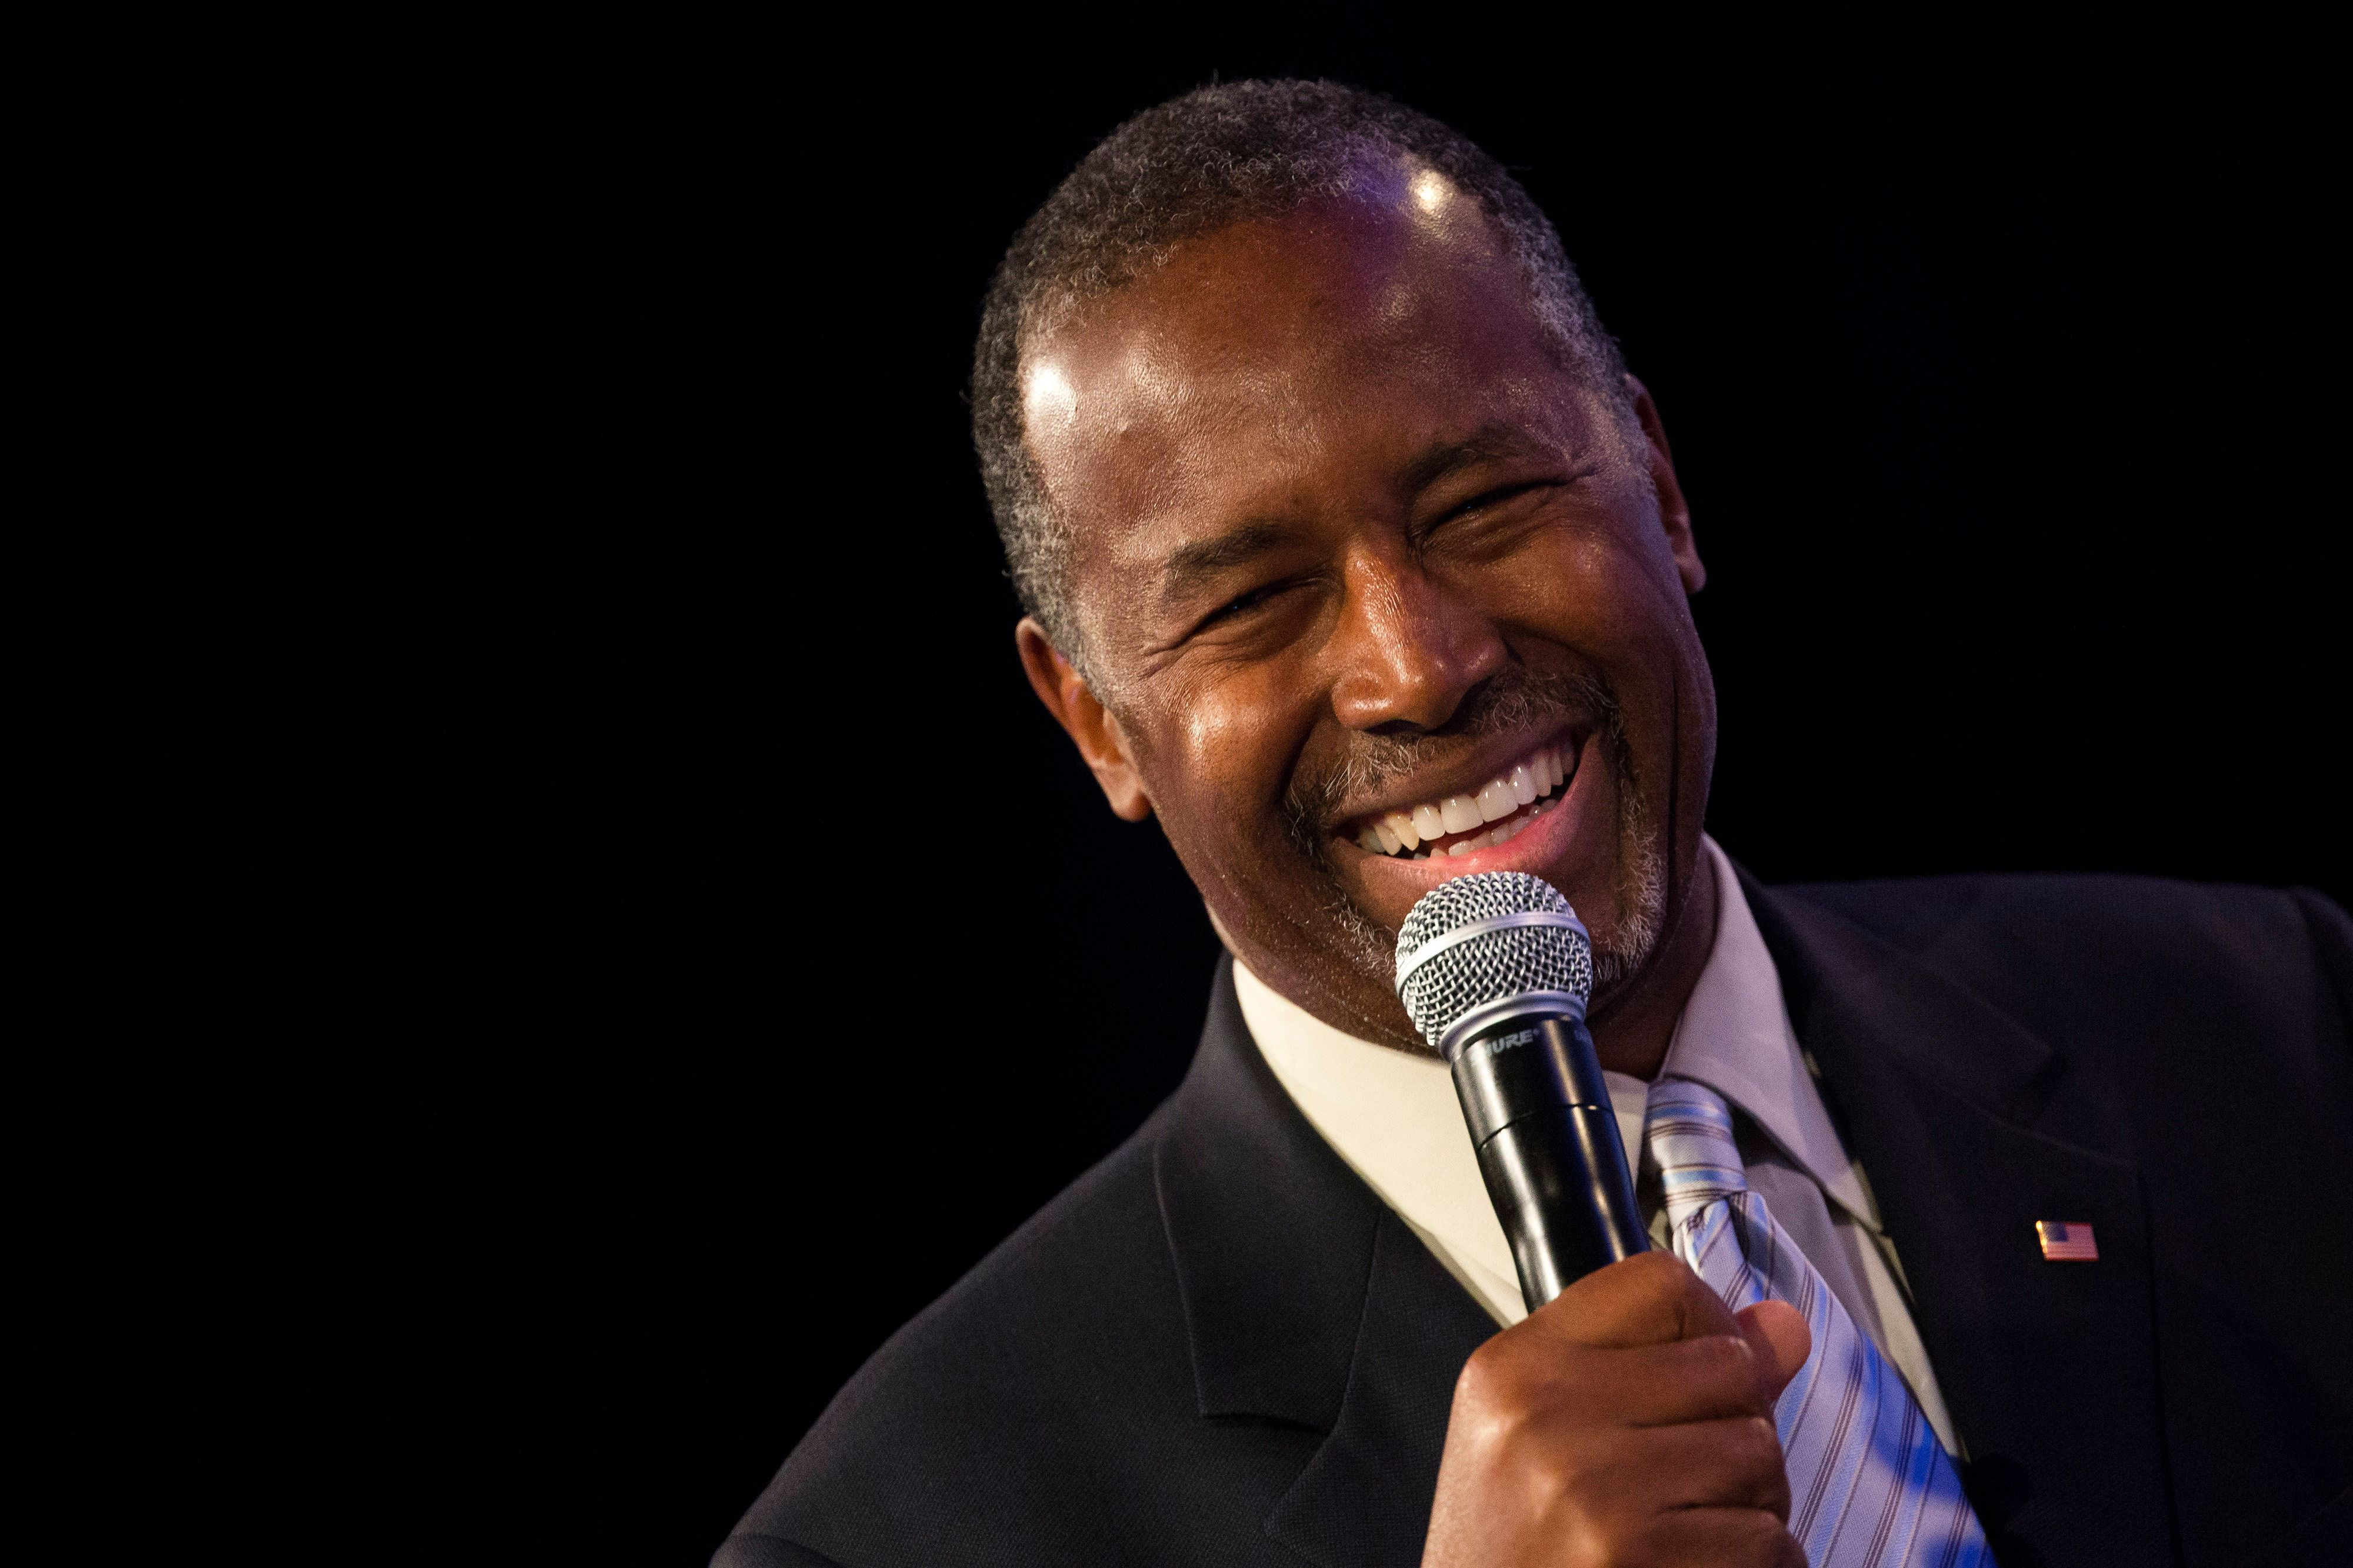 Maybe this time, Ben Carson didn't graspthe fulldimensions of the question.